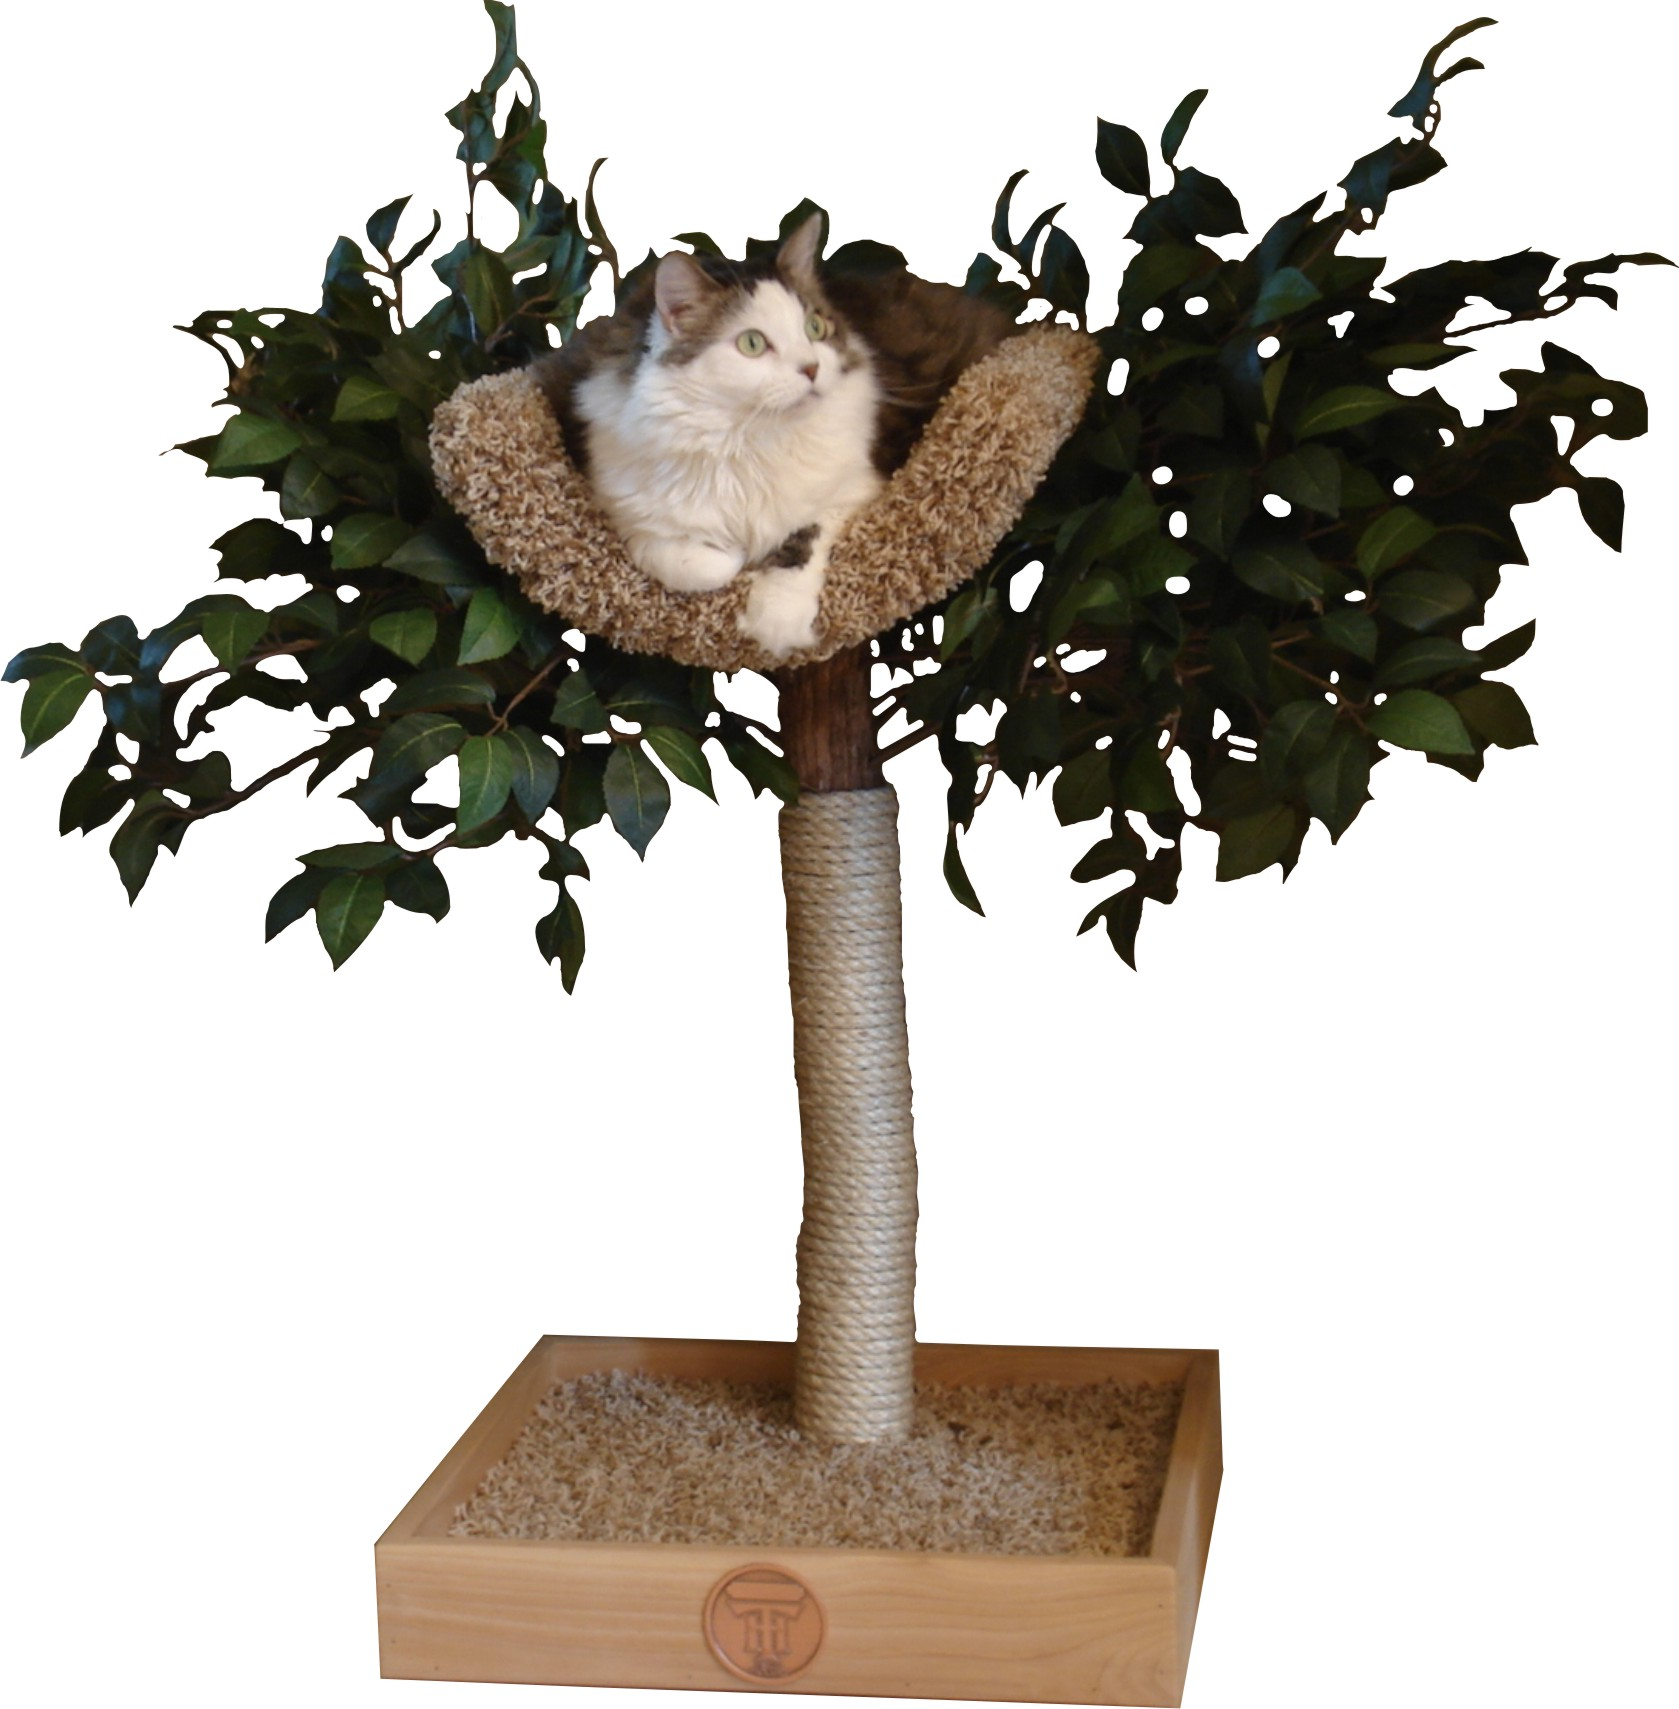 Nesting Tree - Cat Fancy Editors' Choice Award 2012 Winner!